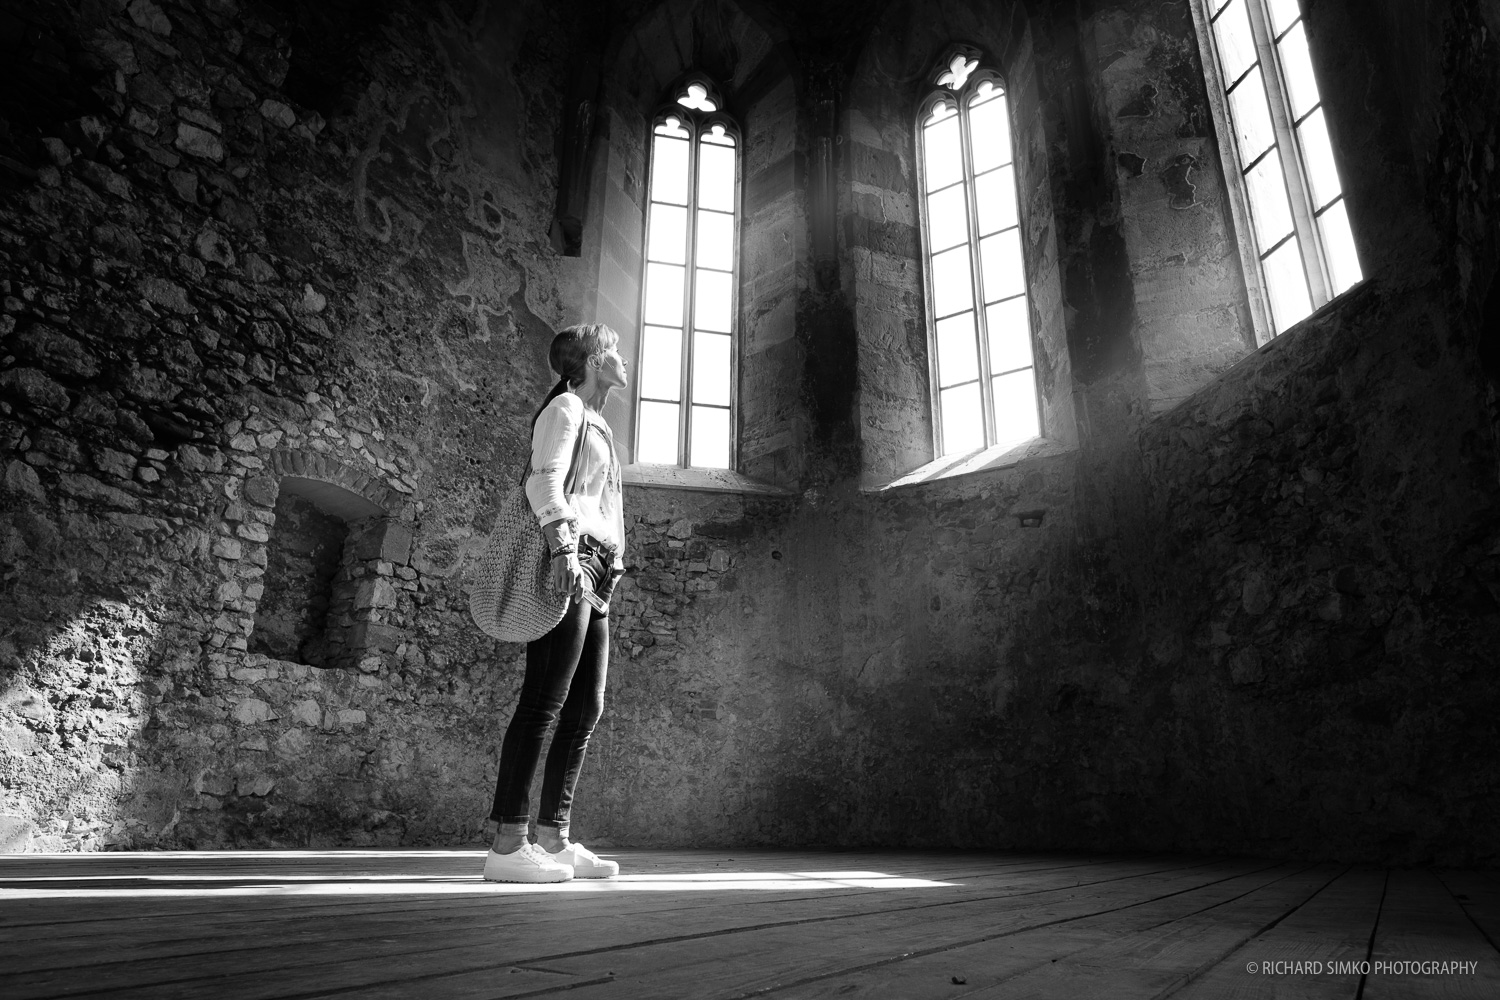 I have been overseas for so long that my own country feels sometimes like an exotic destination to me. During my last stay we visited couple of iconic castle ruins in Slovakia. I took thins photo of my sister in a fairly well preserved room in the Castle of Beckov.